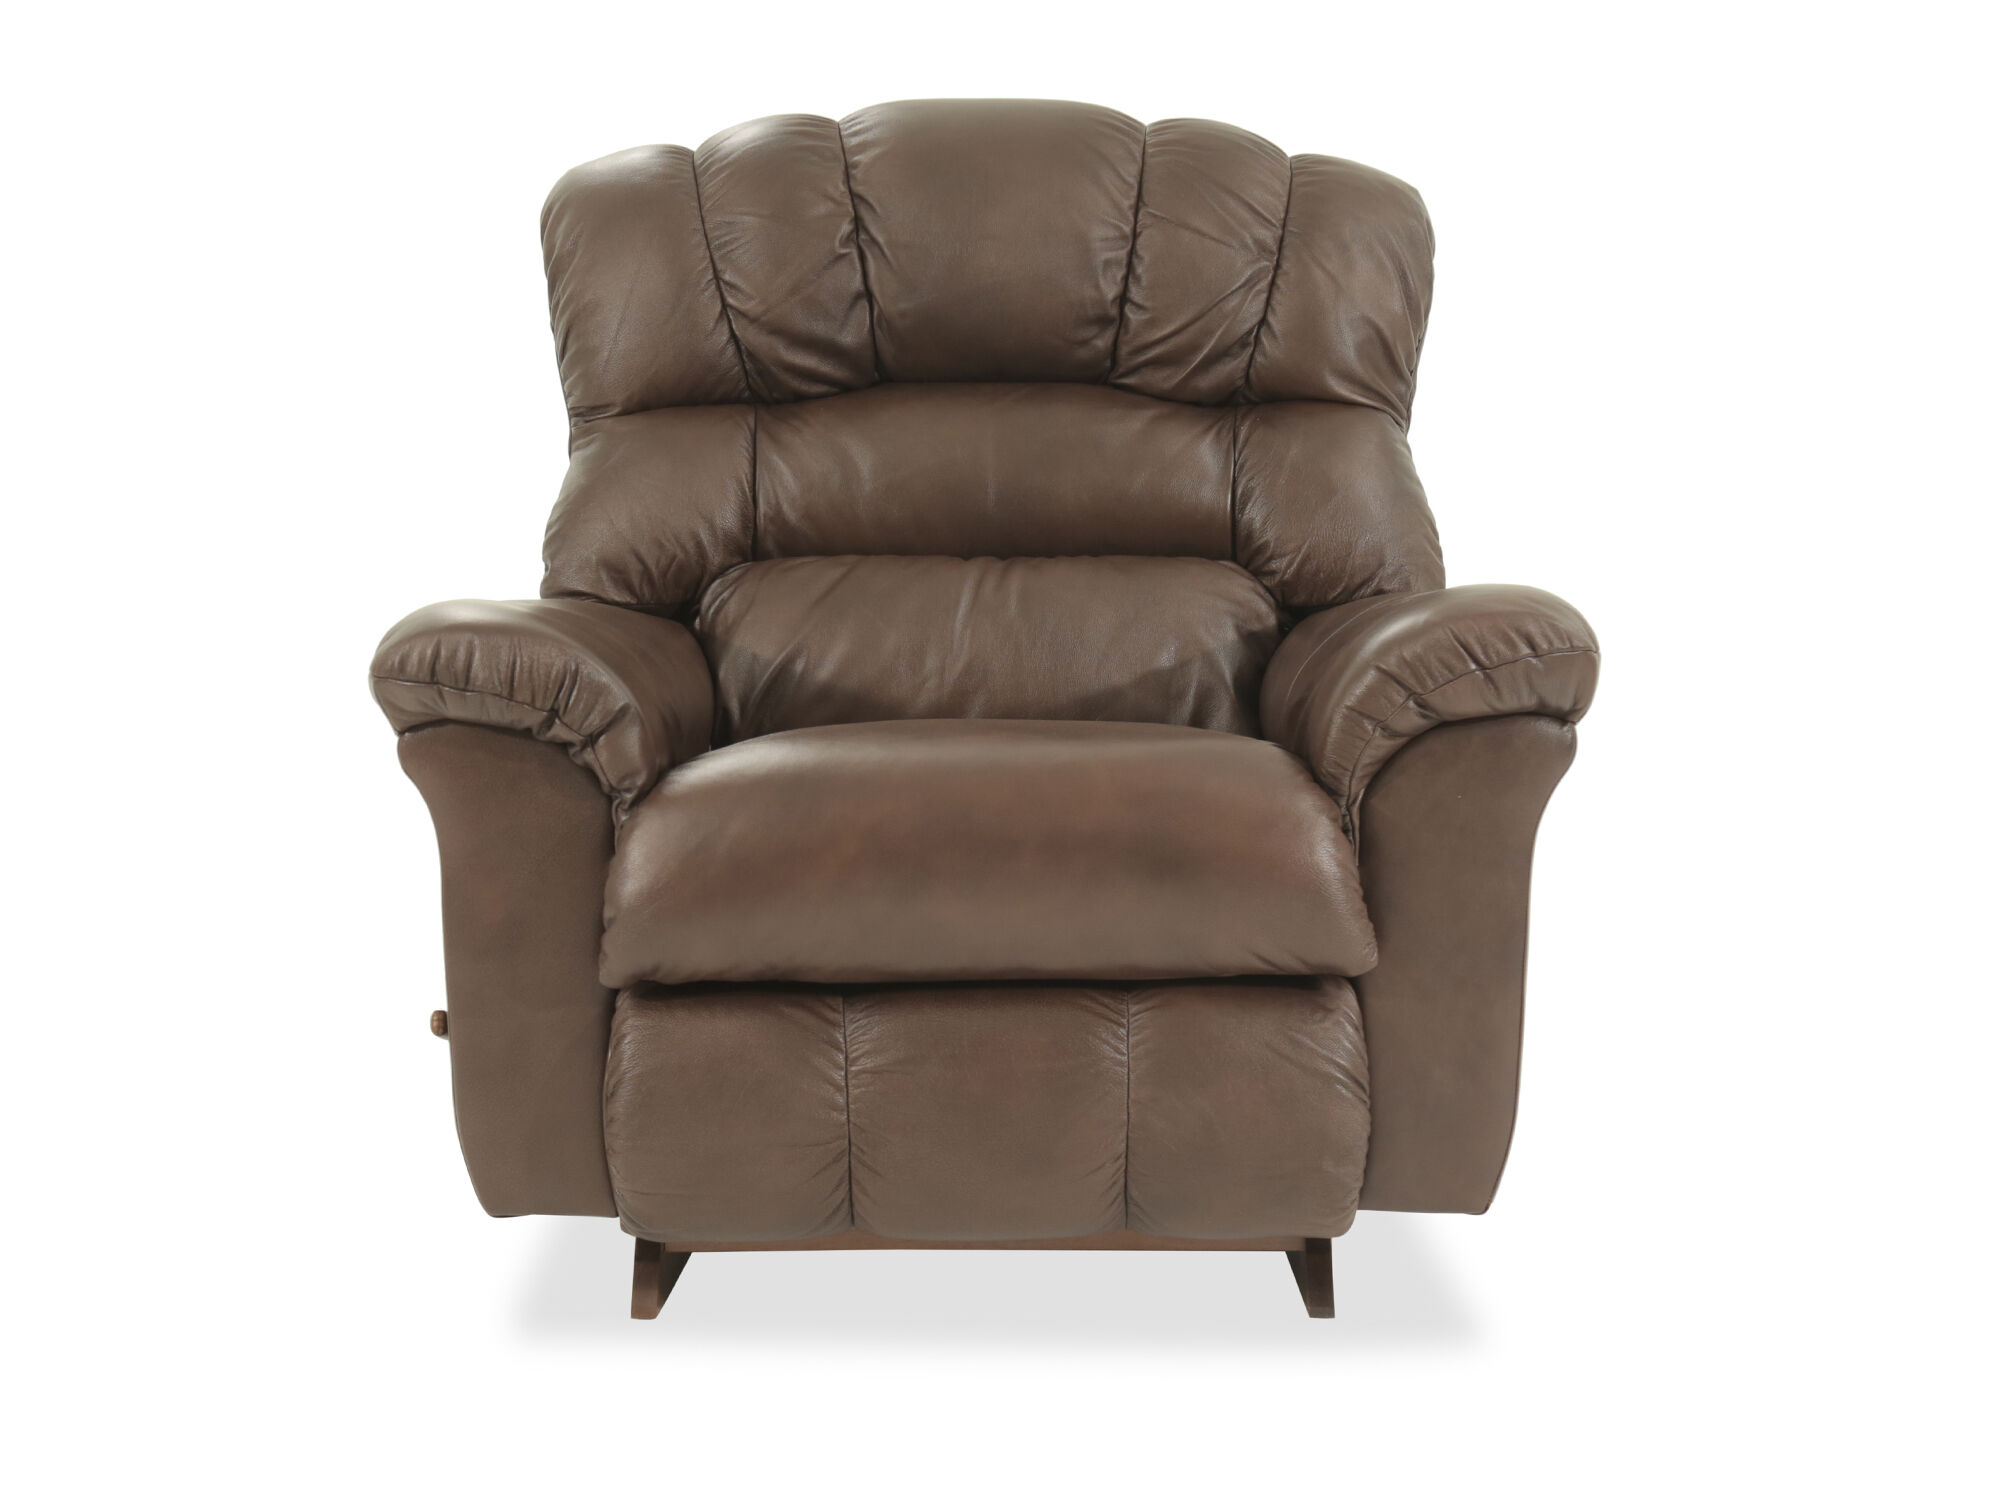 La-Z-Boy Crandell Leather Brown Rocker Recliner ...  sc 1 st  Mathis Brothers & La-Z-Boy Furniture | Mathis Brothers Furniture islam-shia.org